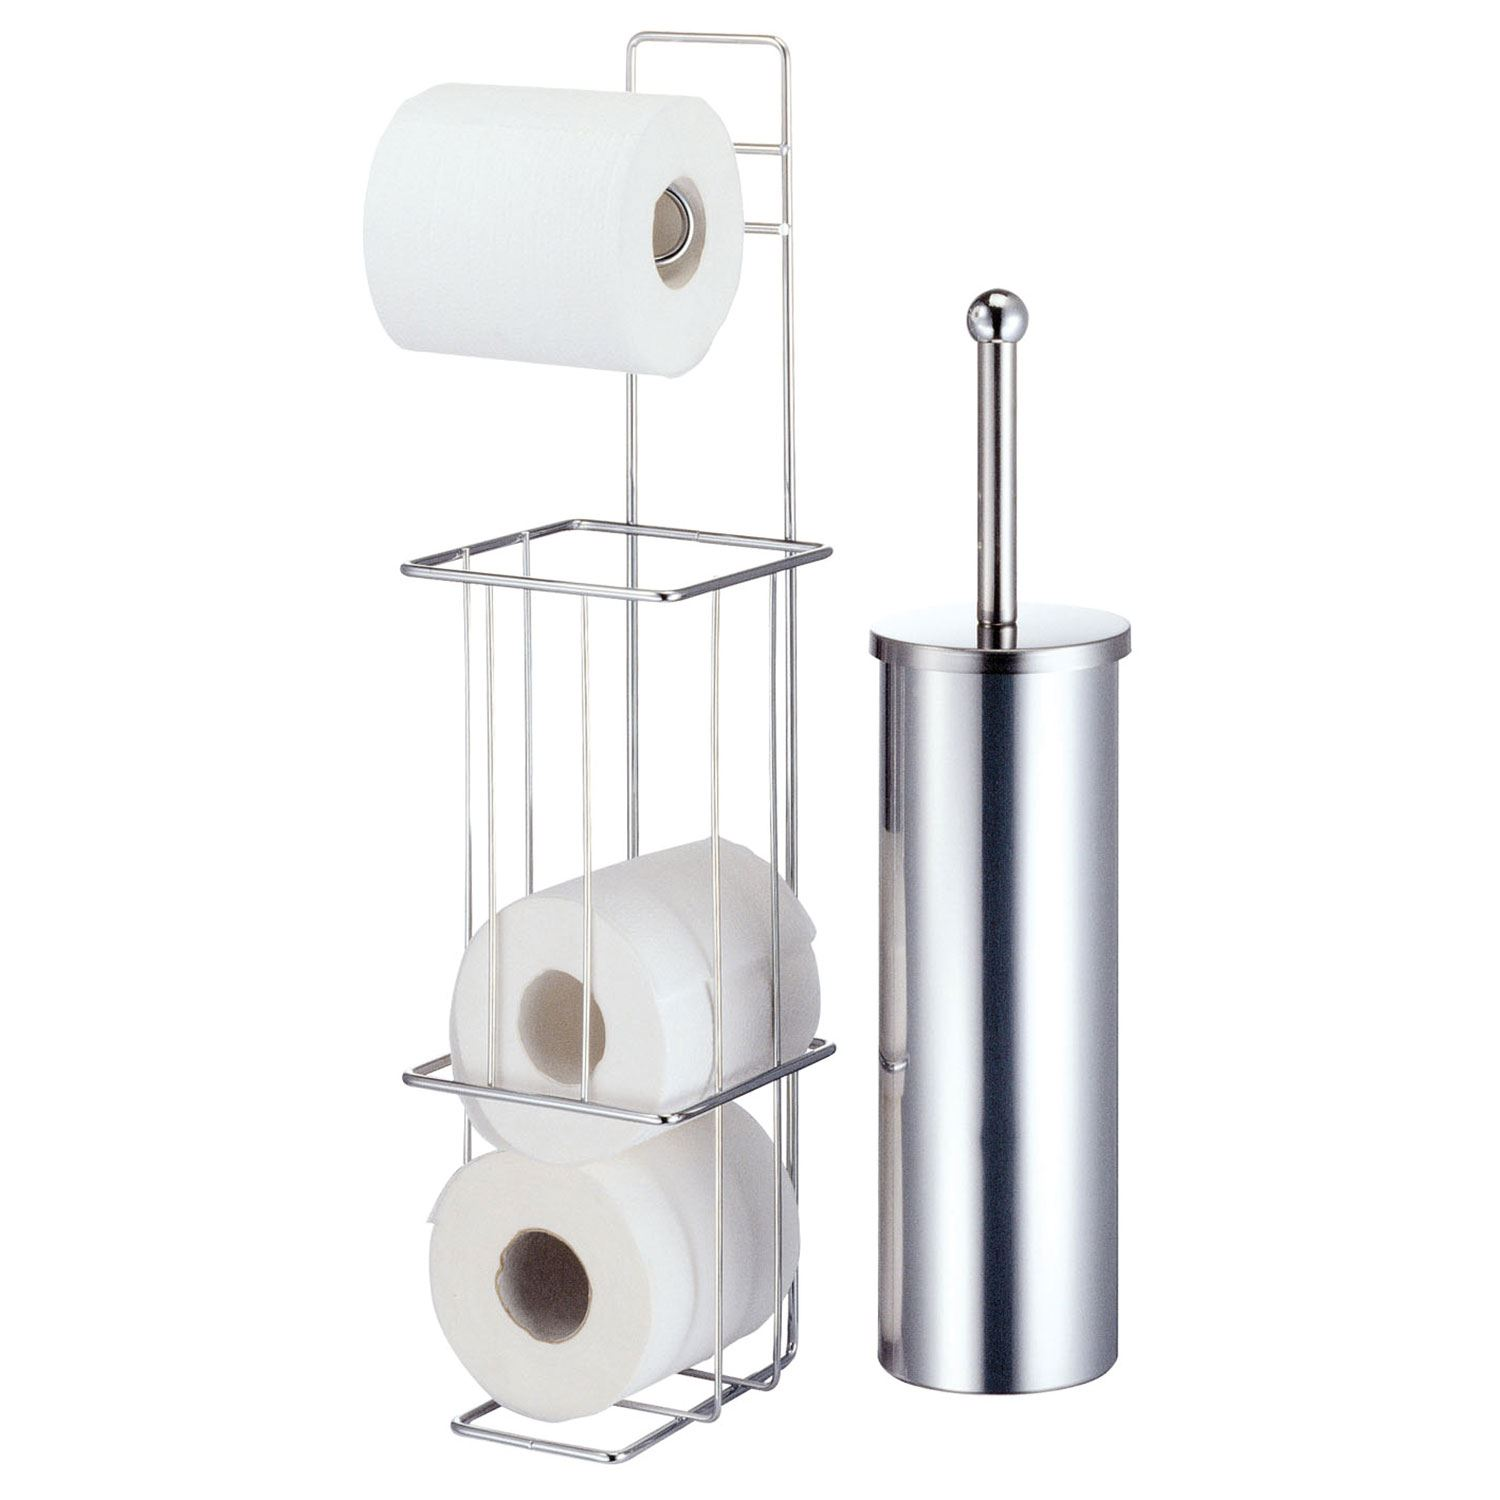 Free Standing Chrome Bathroom Toilet Paper Roll Stand & Toilet Brush ...